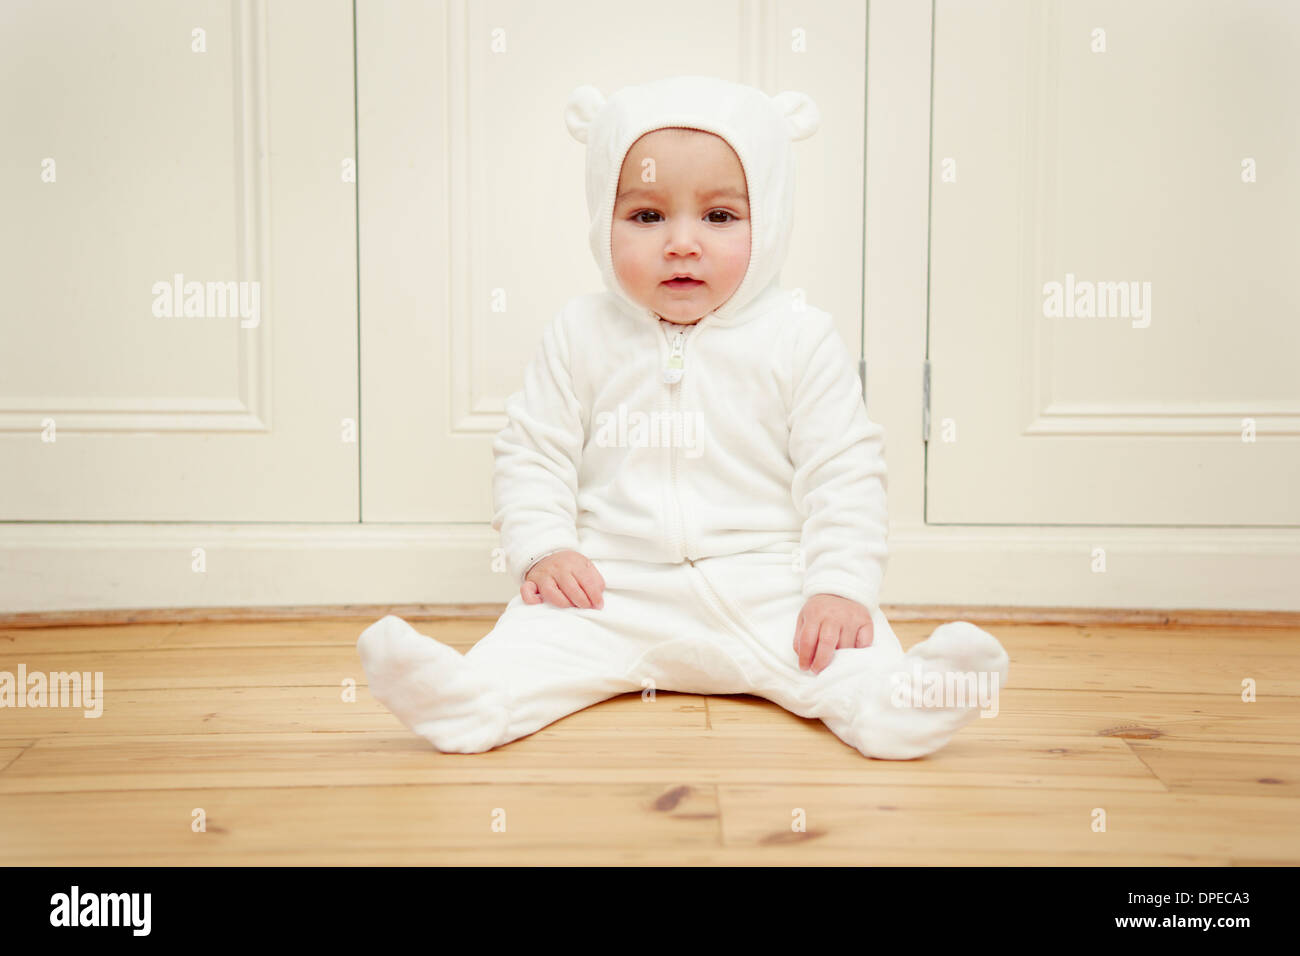 Baby sitting wearing bear babygro Photo Stock